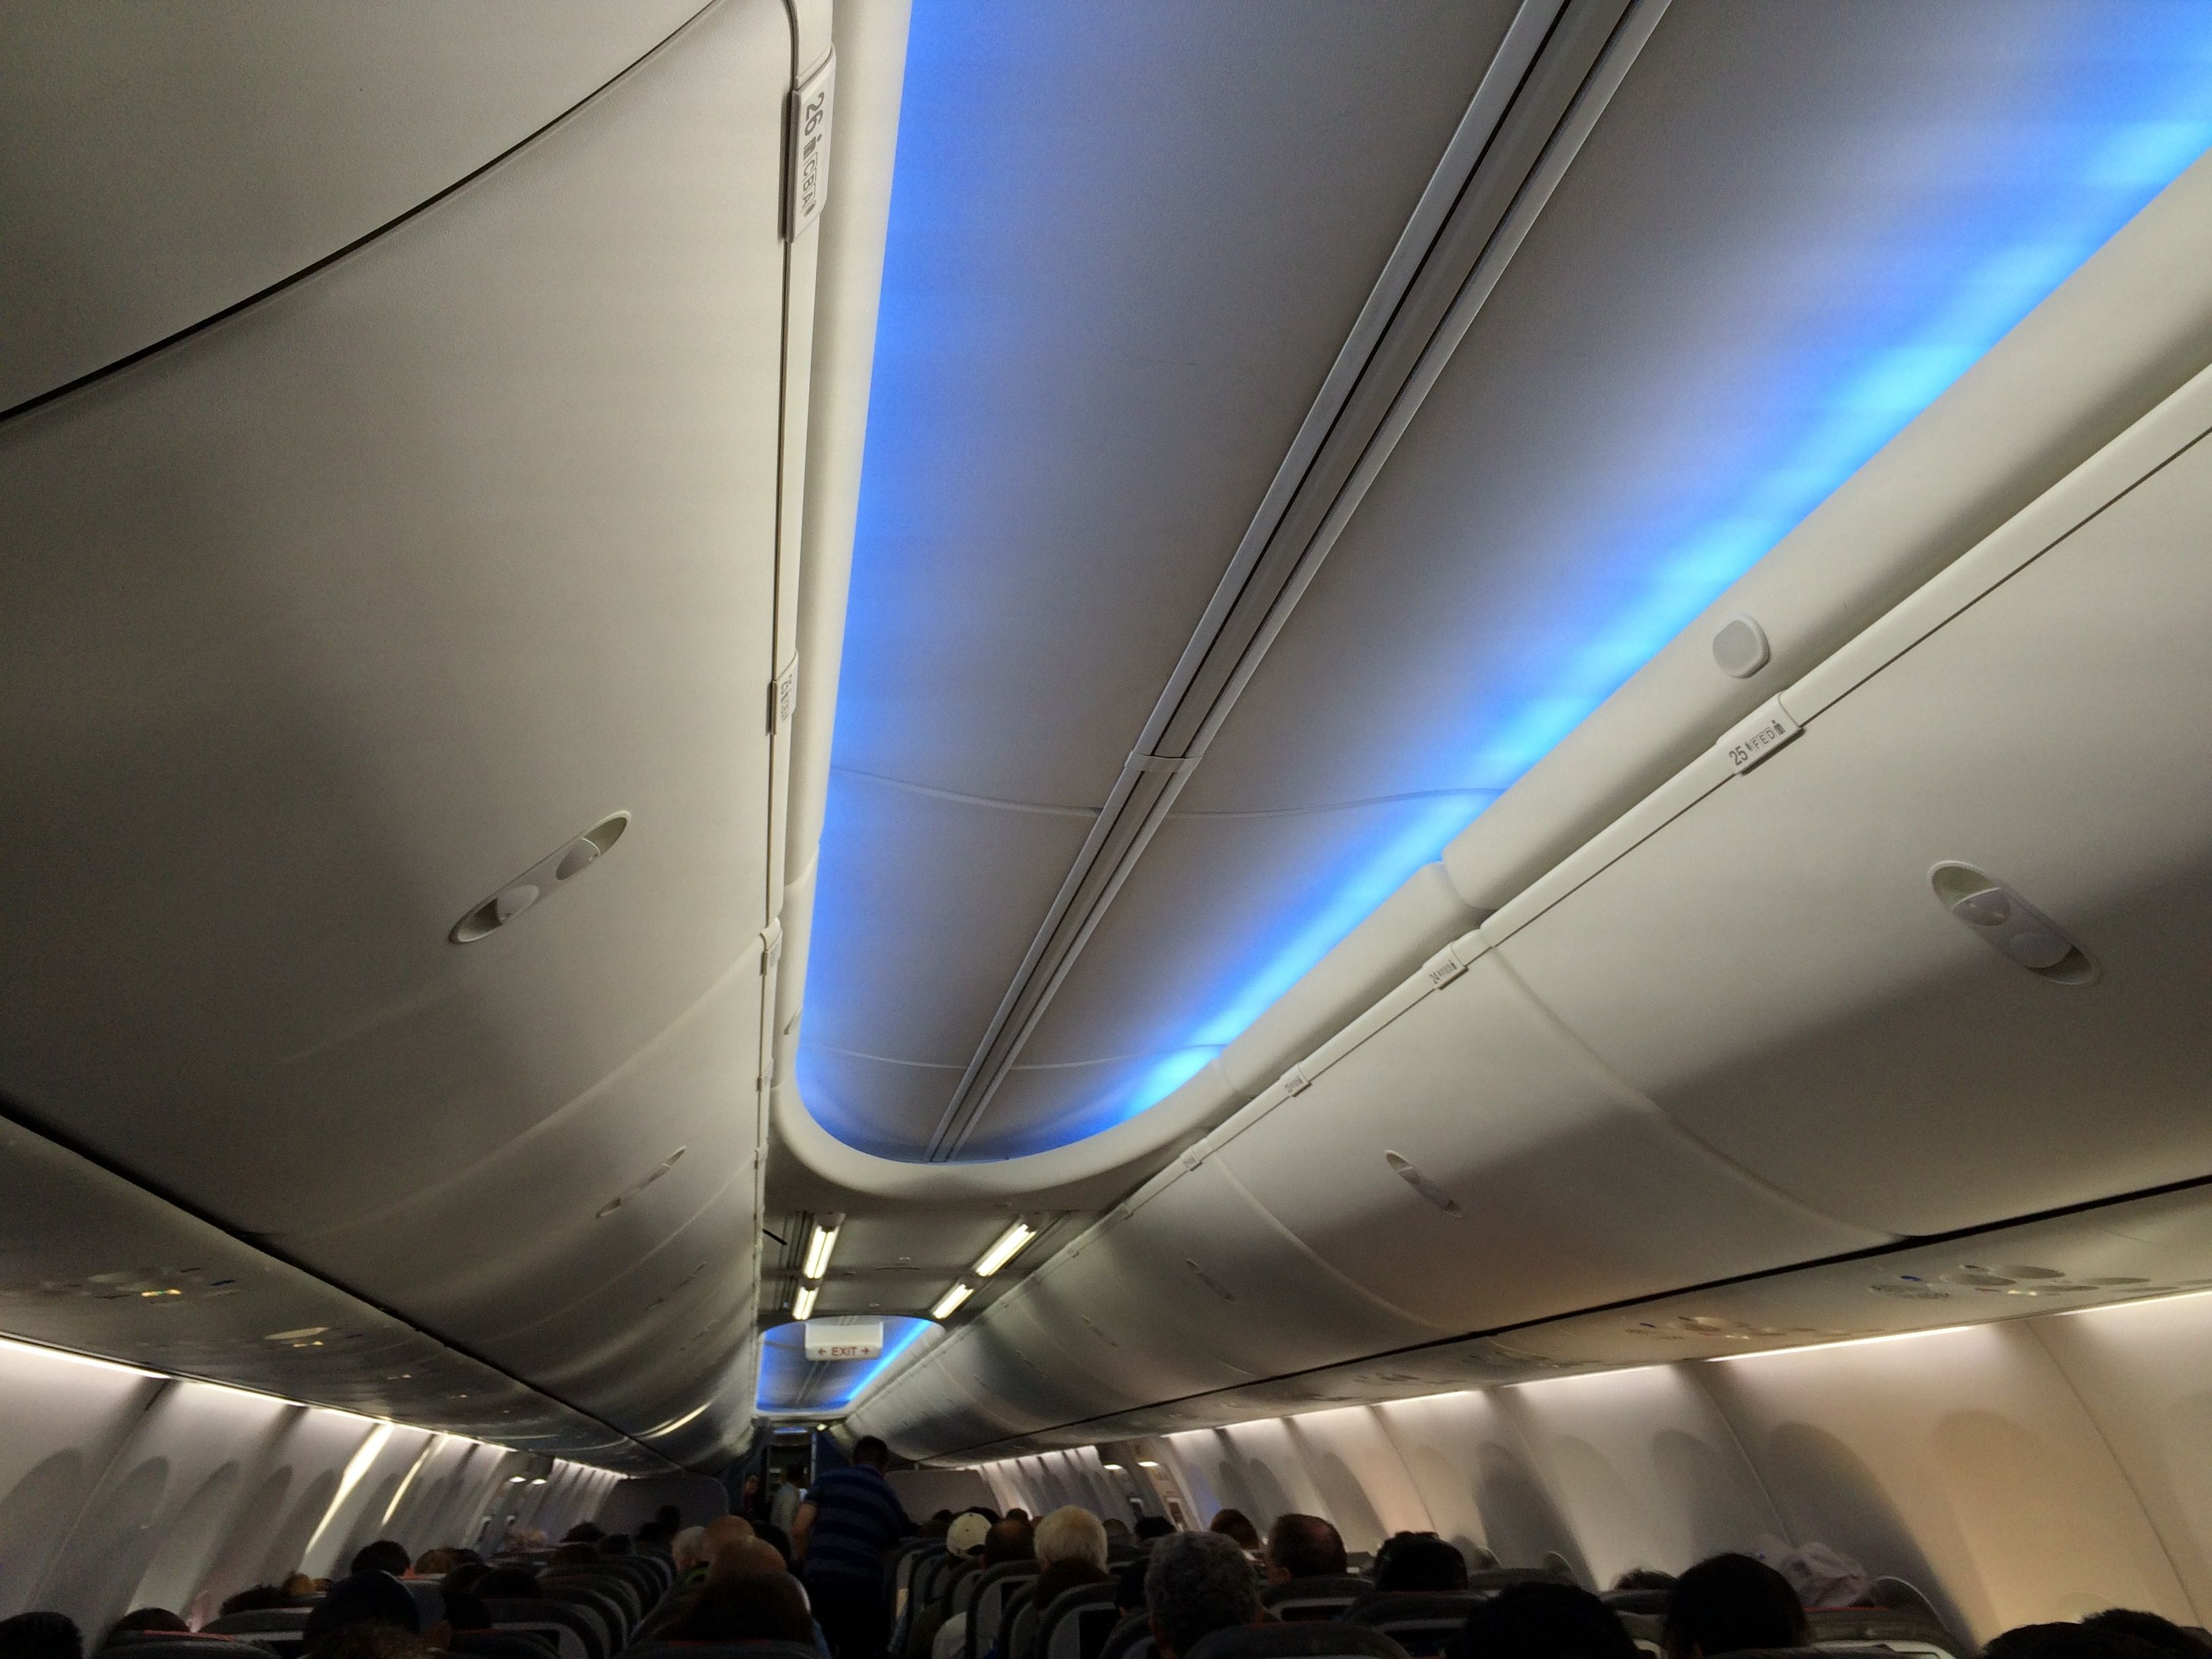 American Airlines Boeing 737 - Boeing Sky Interior. LatinFlyer.com ...